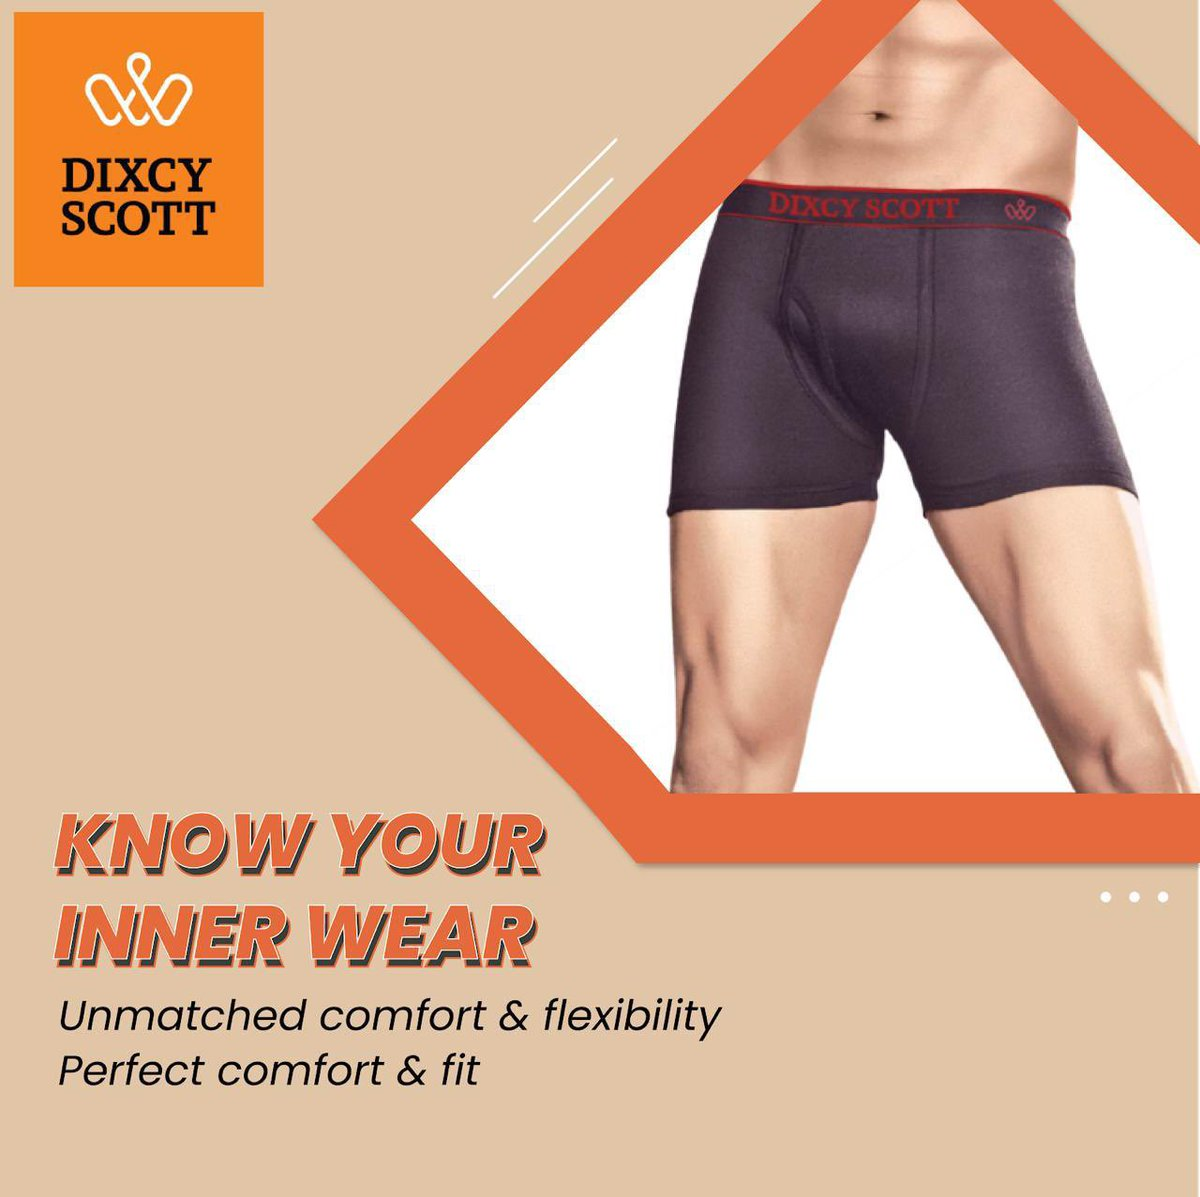 Boost your confidence daily with style & comfort of Scott inner wear. #LoveYourBody  #DixcyScott #Dixcy #Scott #MensWear #CasualWear #Athleisure #WinterWear #WorkoutWear #FeelItNow #Comfort #Style #Stylish #InnerWear #Hero